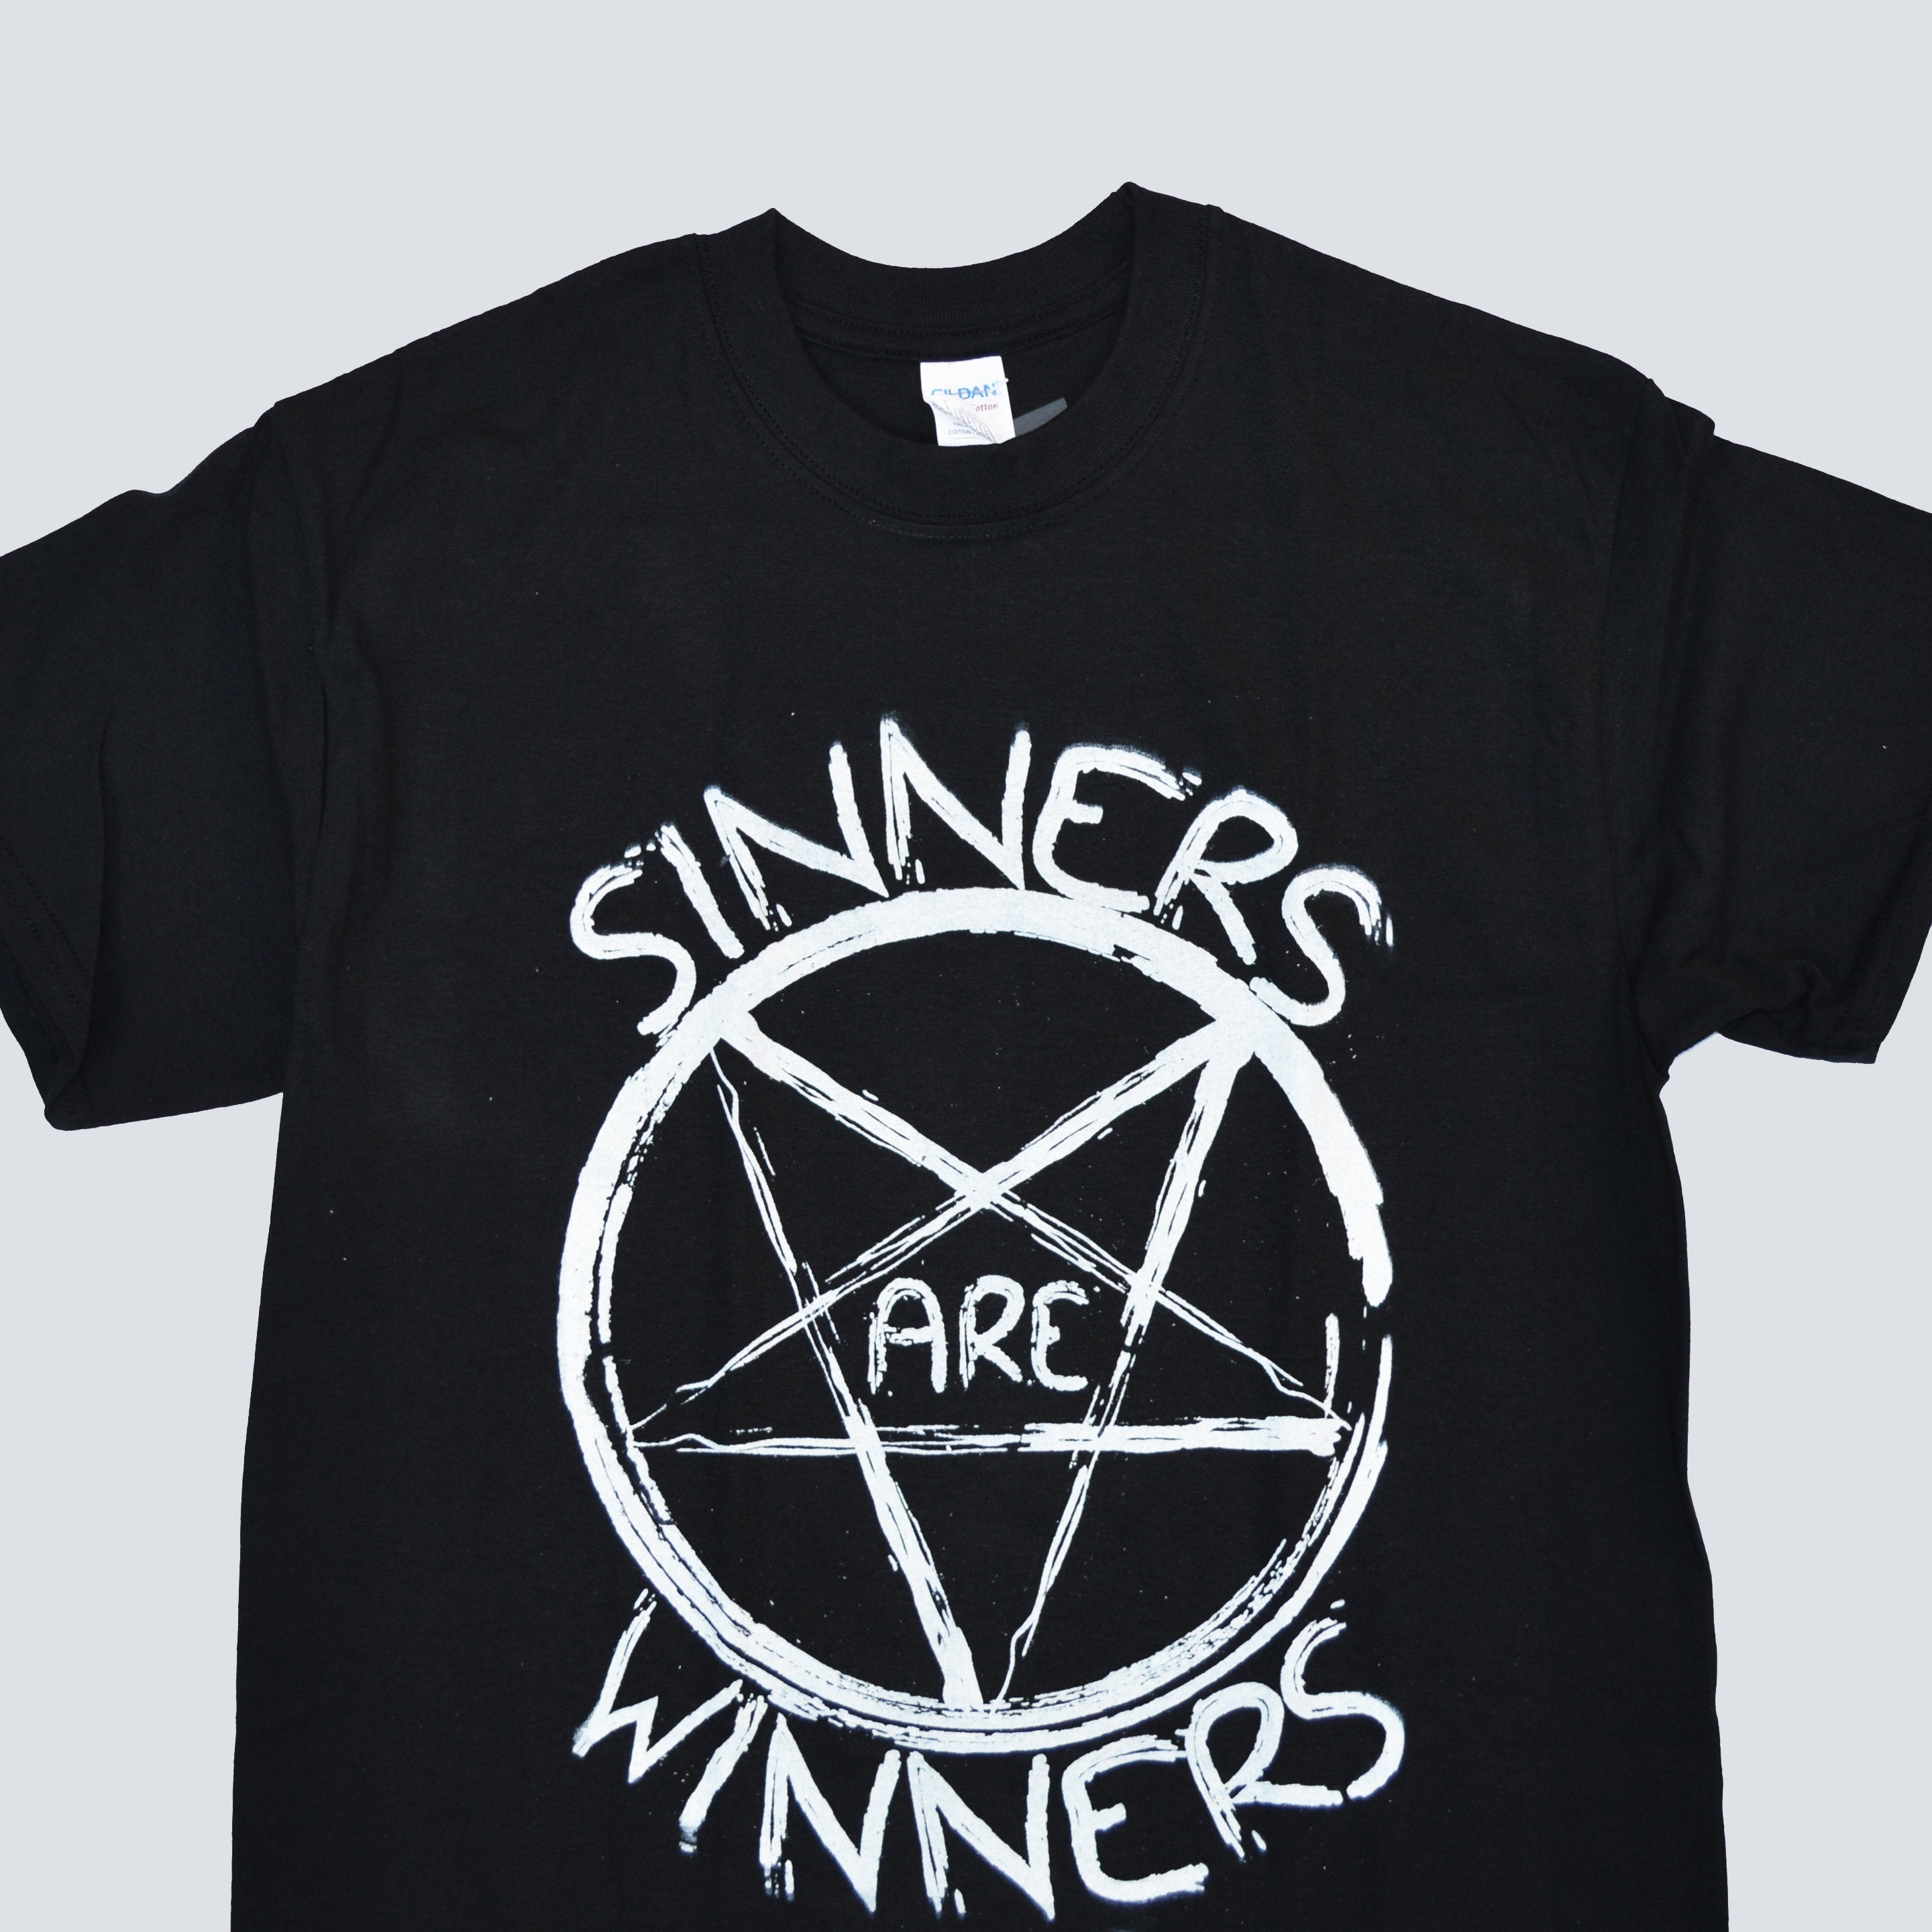 HAHAYULE Sinners Are Winners Unisex 90s Grunge Gothic Black T-Shirt Hipsters Satanic Graphic Tee